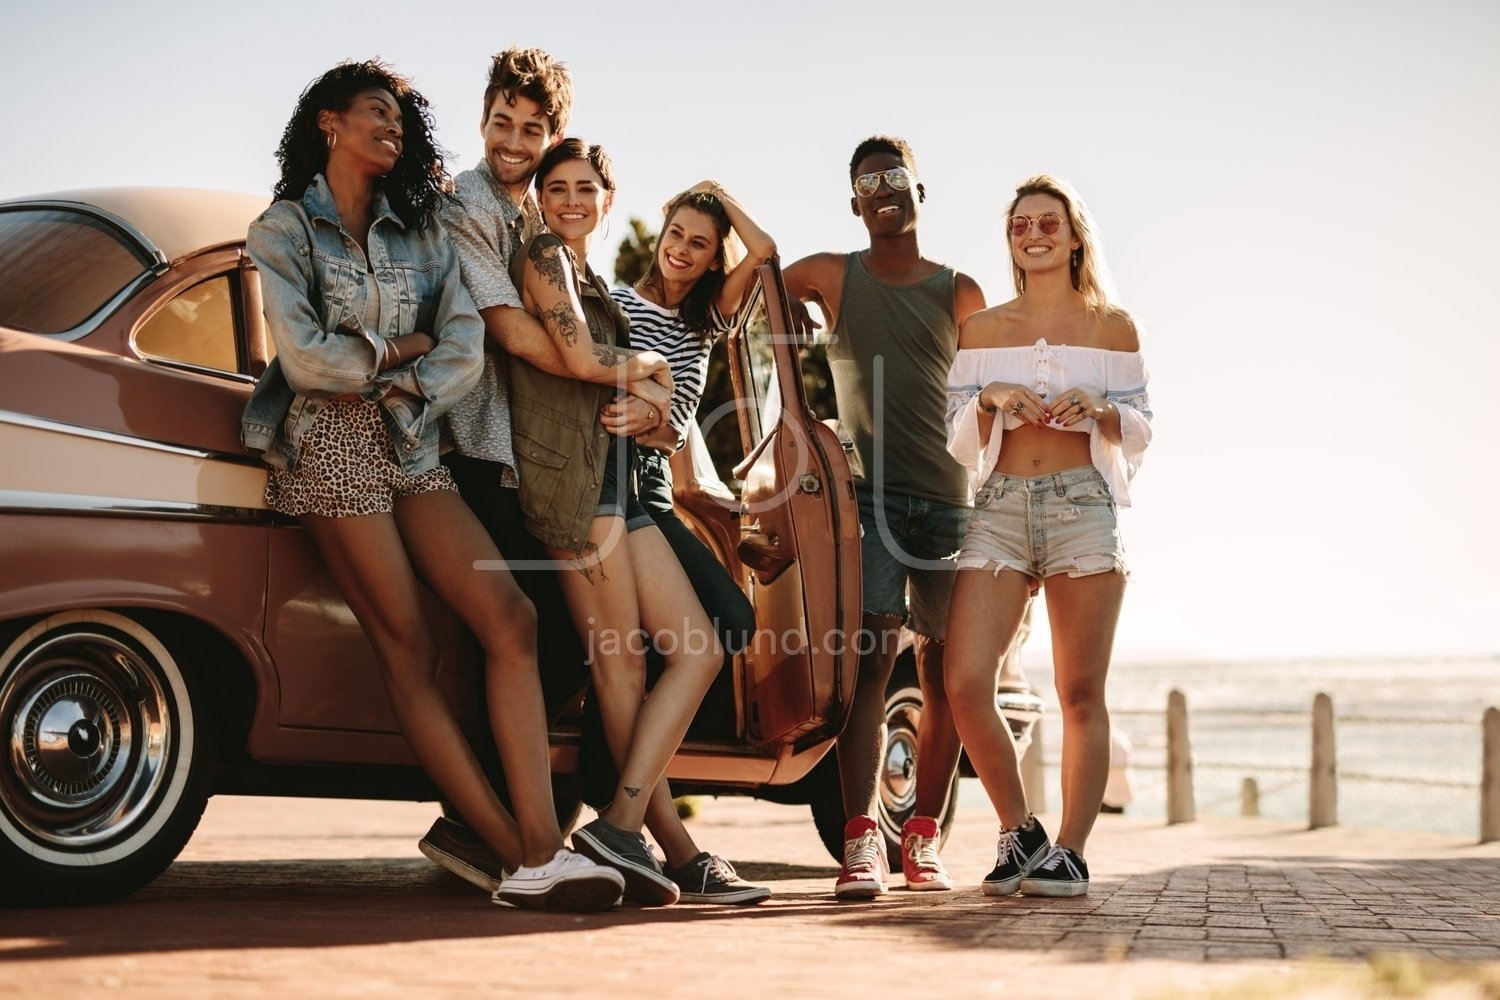 Diverse Group Of Friends On A Summer Road Trip Jacob Lund Photography Store Premium Stock Photo